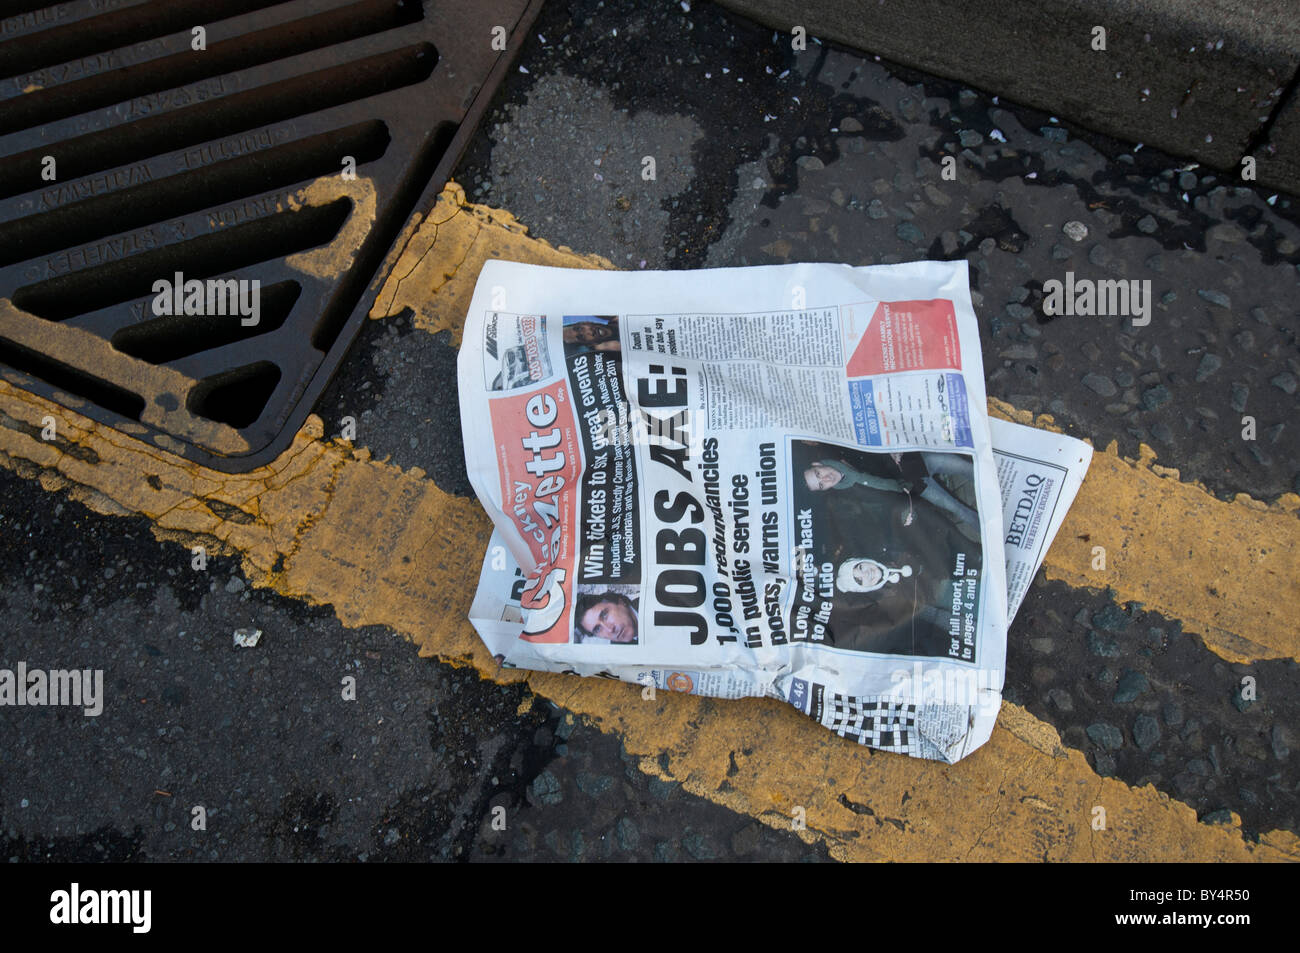 Hackney economic crisis. Newspaper with front page headline ' Jobs axe' in the gutter - Stock Image